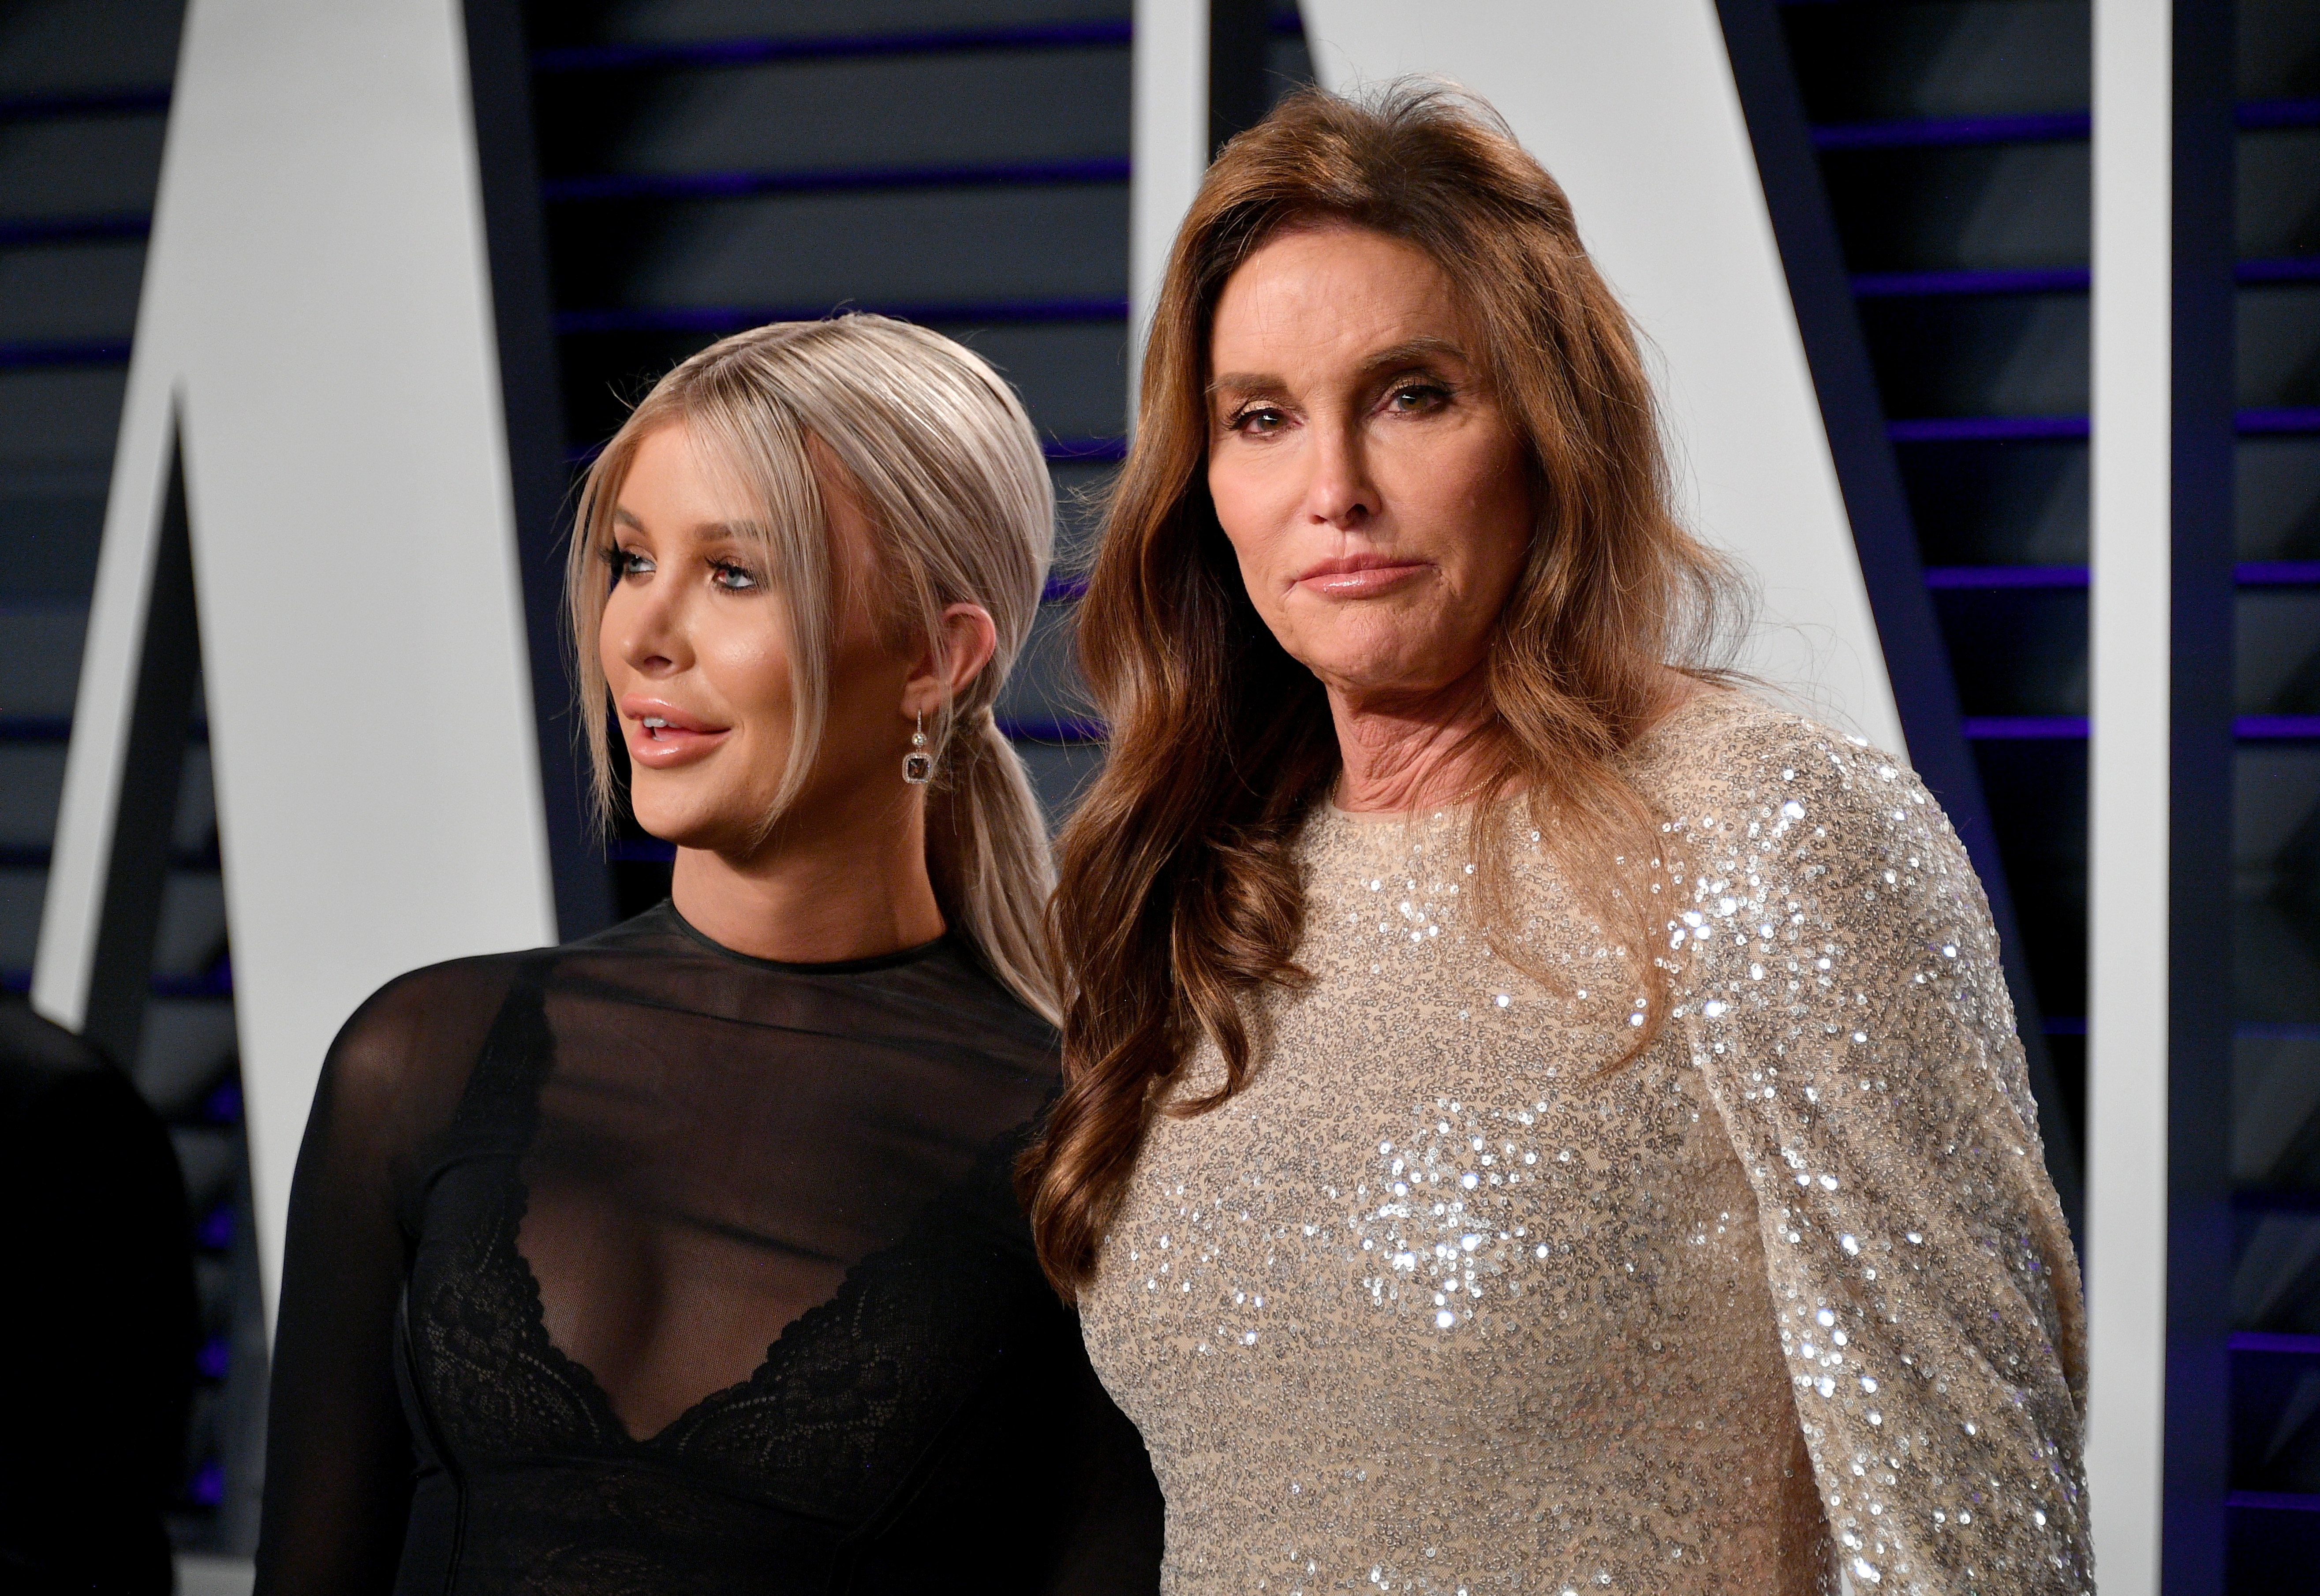 Sophia Hutchins and Caitlyn Jenner attend the 2019 Vanity Fair Oscar Party on February 24, 2019 in Beverly Hills, California | Photo: GettyImages